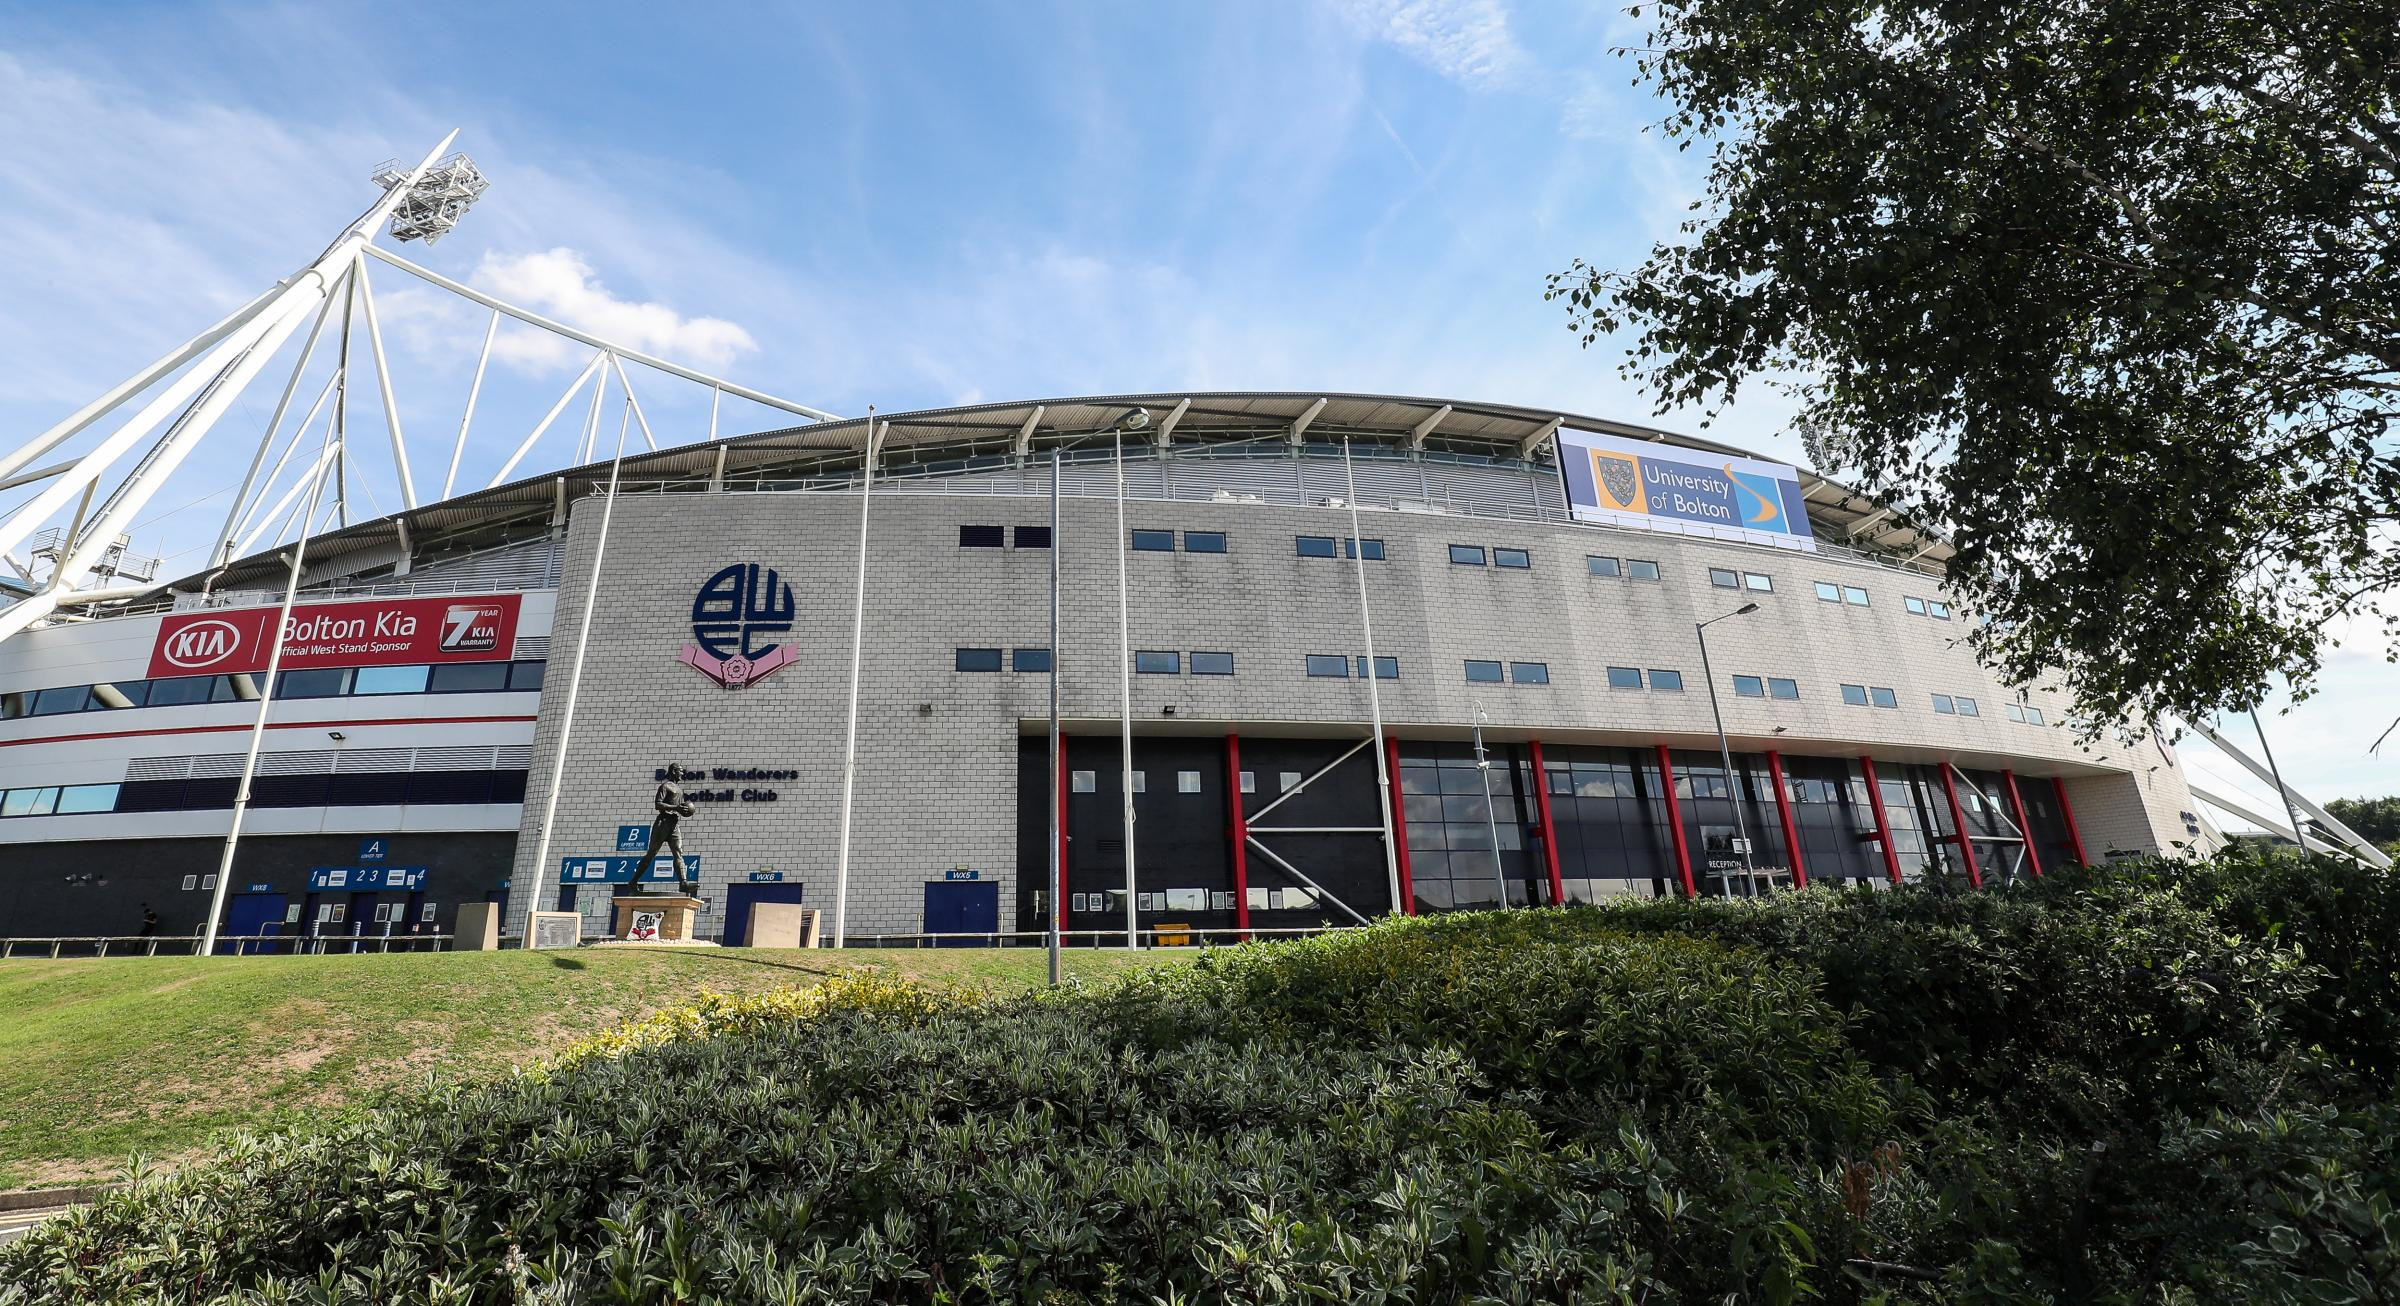 Bolton Wanderers dealt another winding-up petition by HMRC